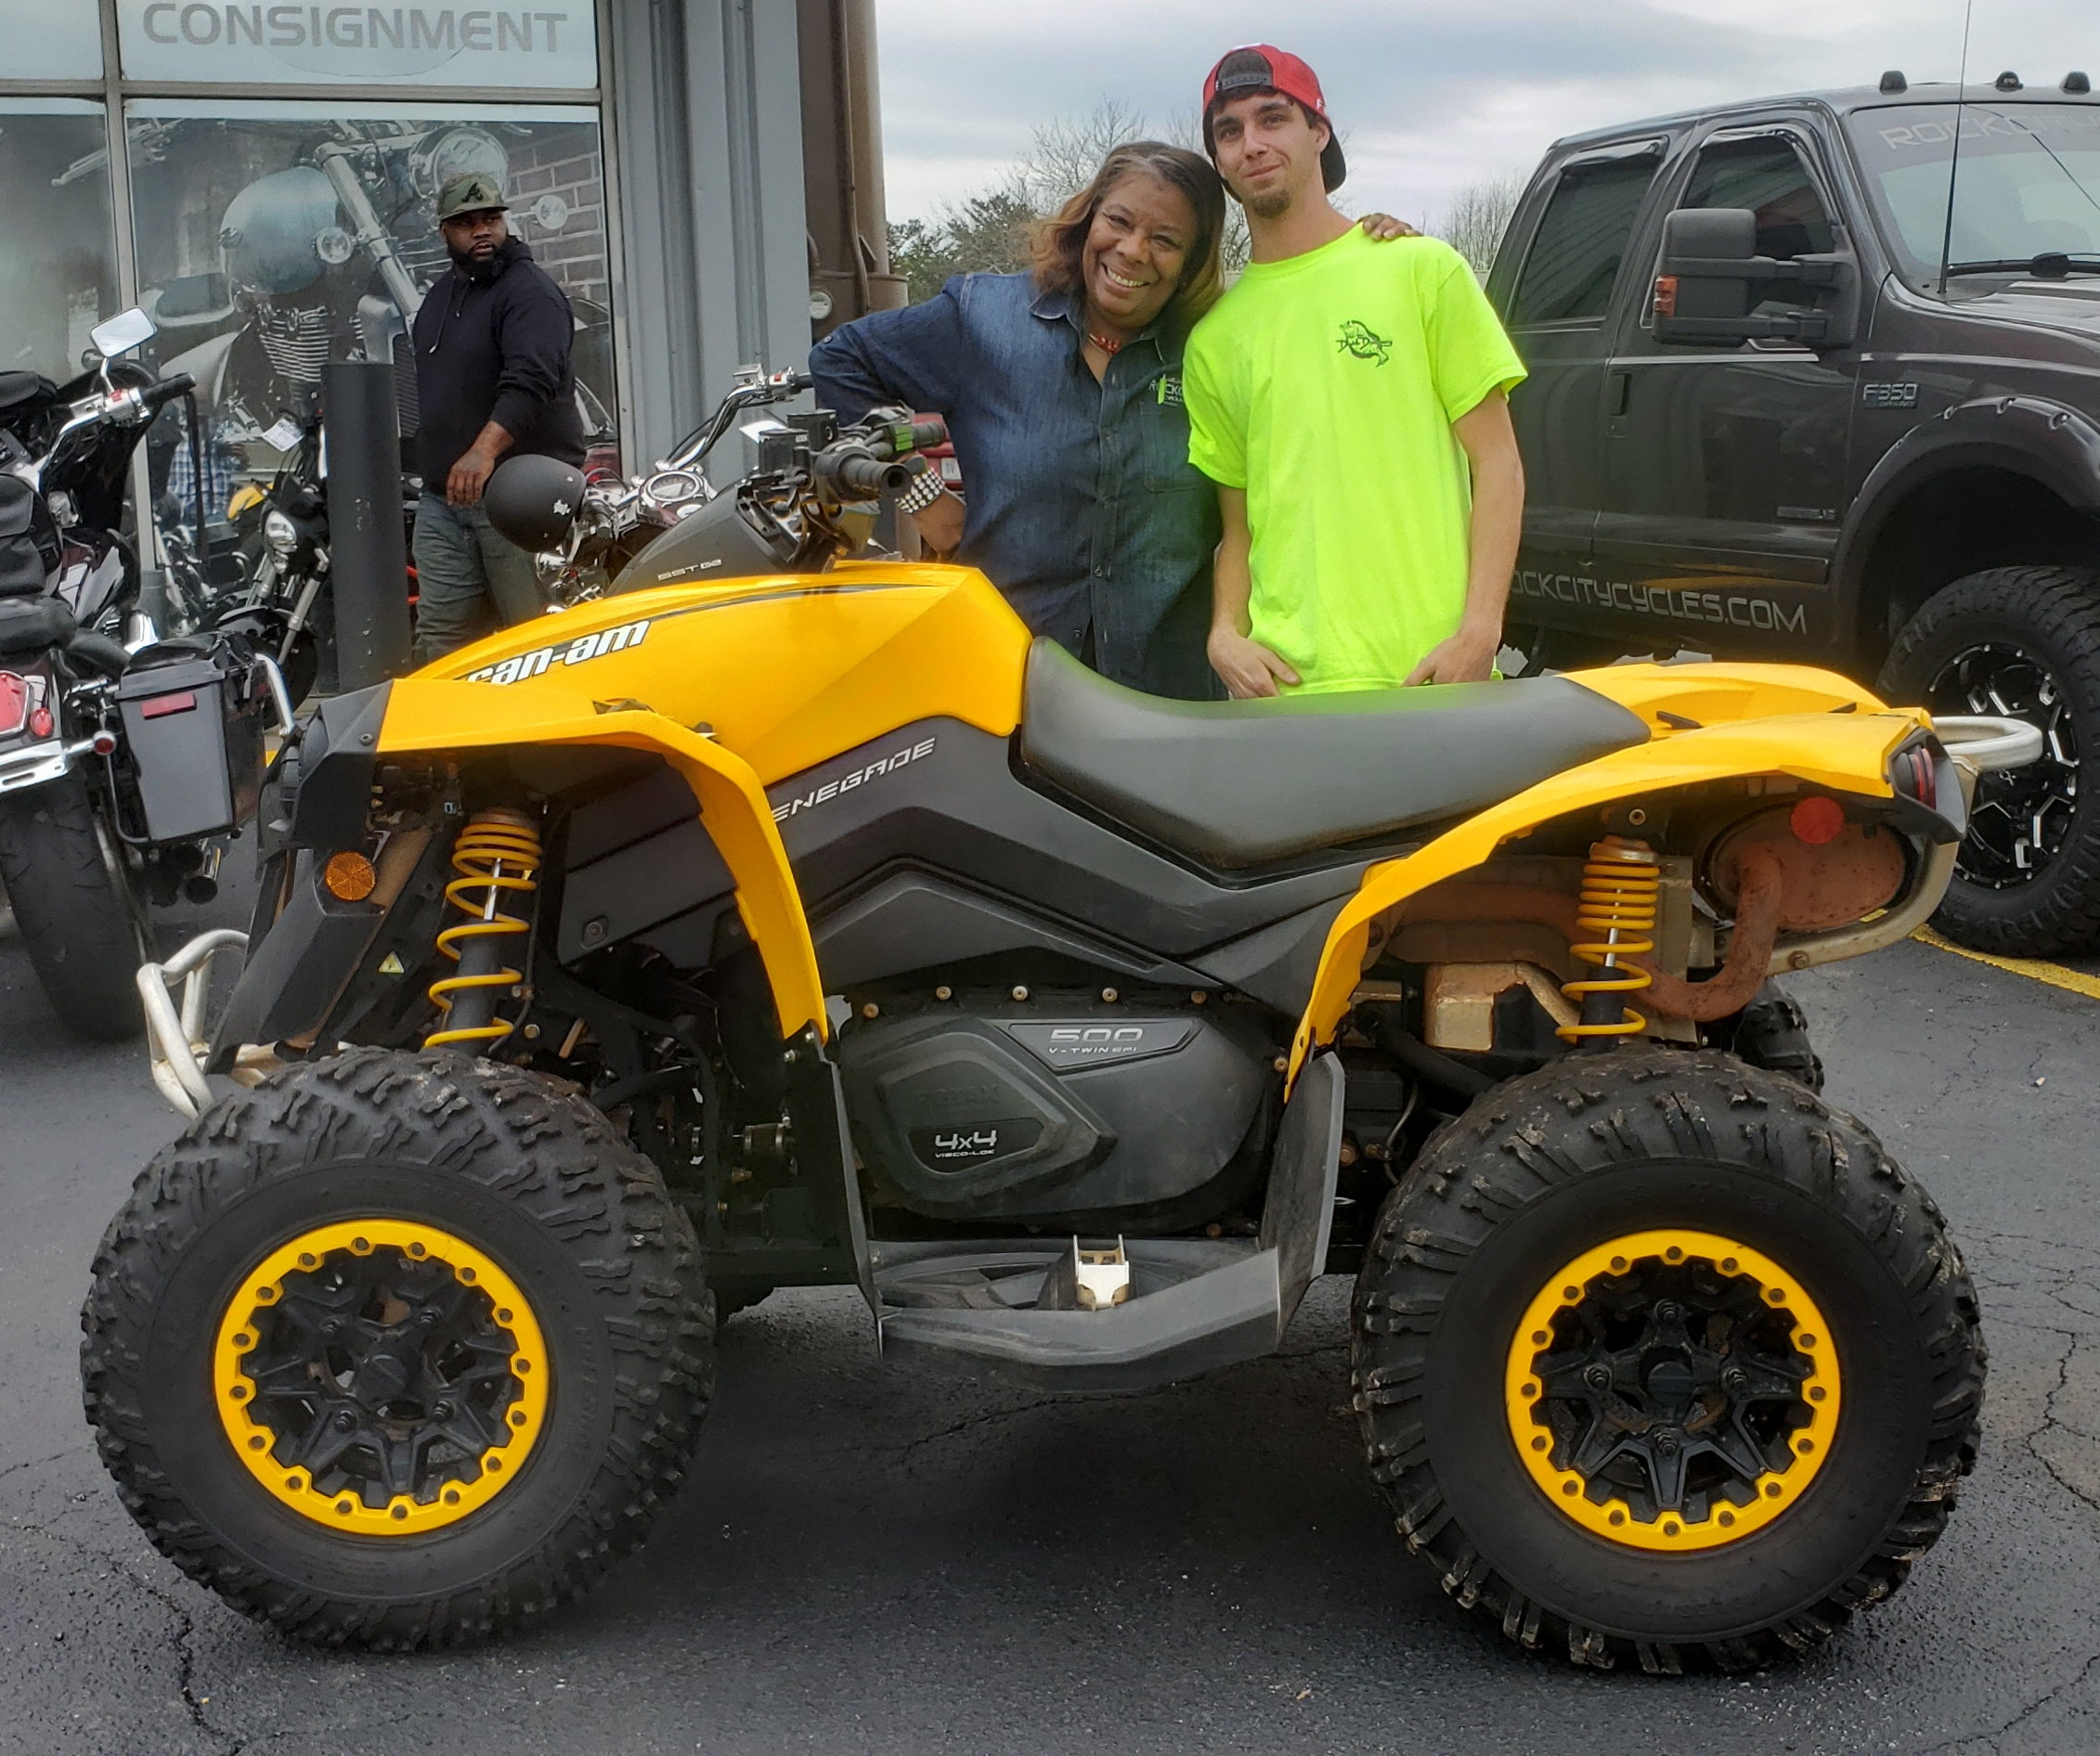 Matthew P. with his 2014 Can-Am Renegade 500 ATV